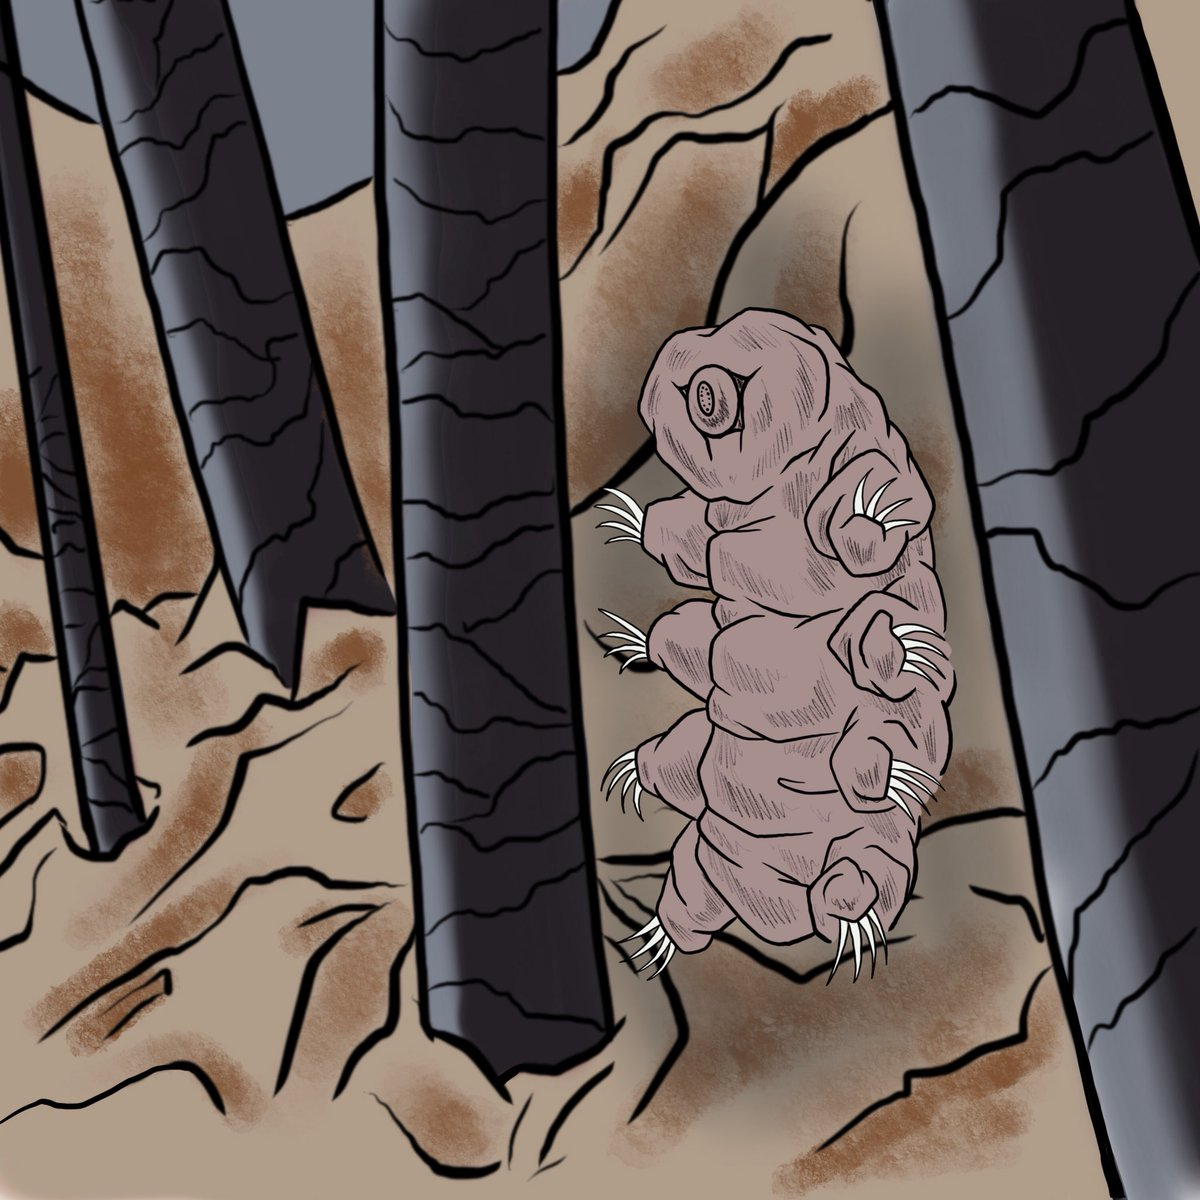 painting of a tardigrade standing with limbs outstretched